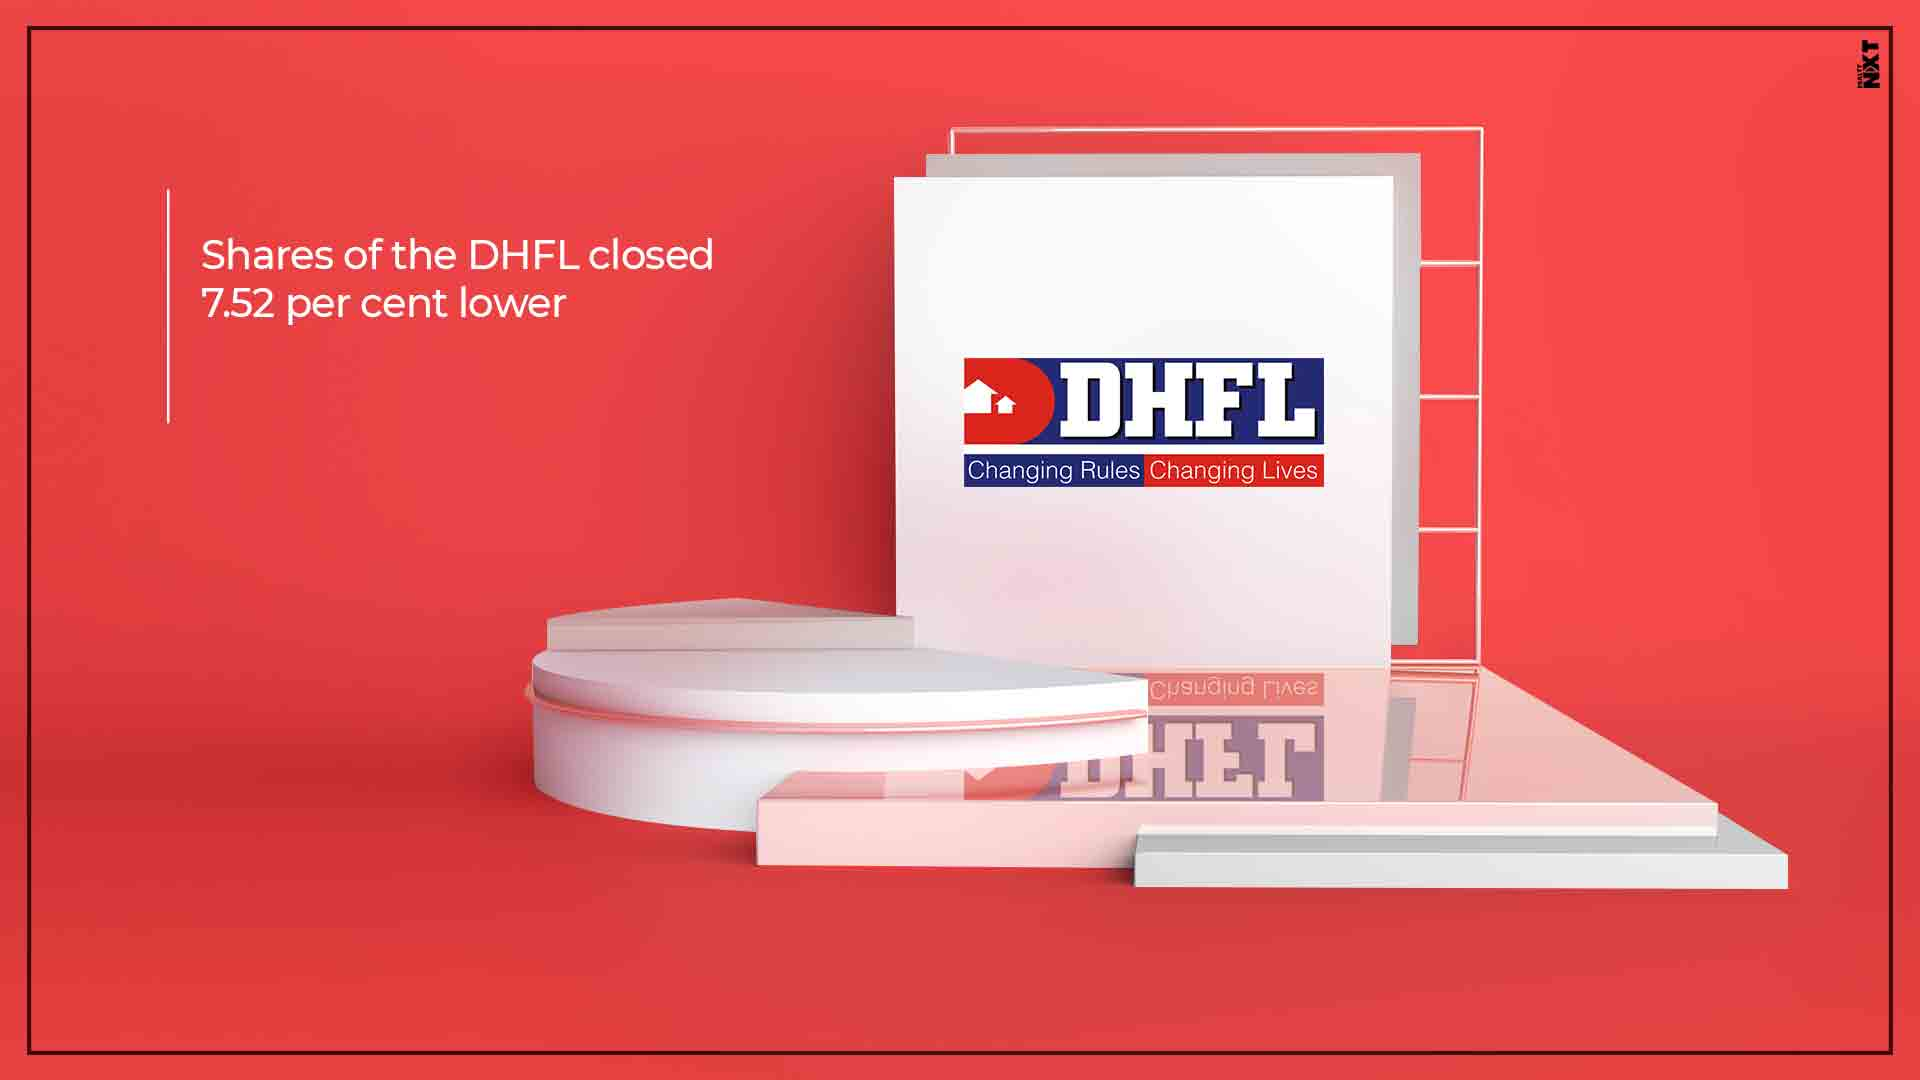 NBFC stocks tumble amid ongoing crisis; DHFL slides nearly 8%